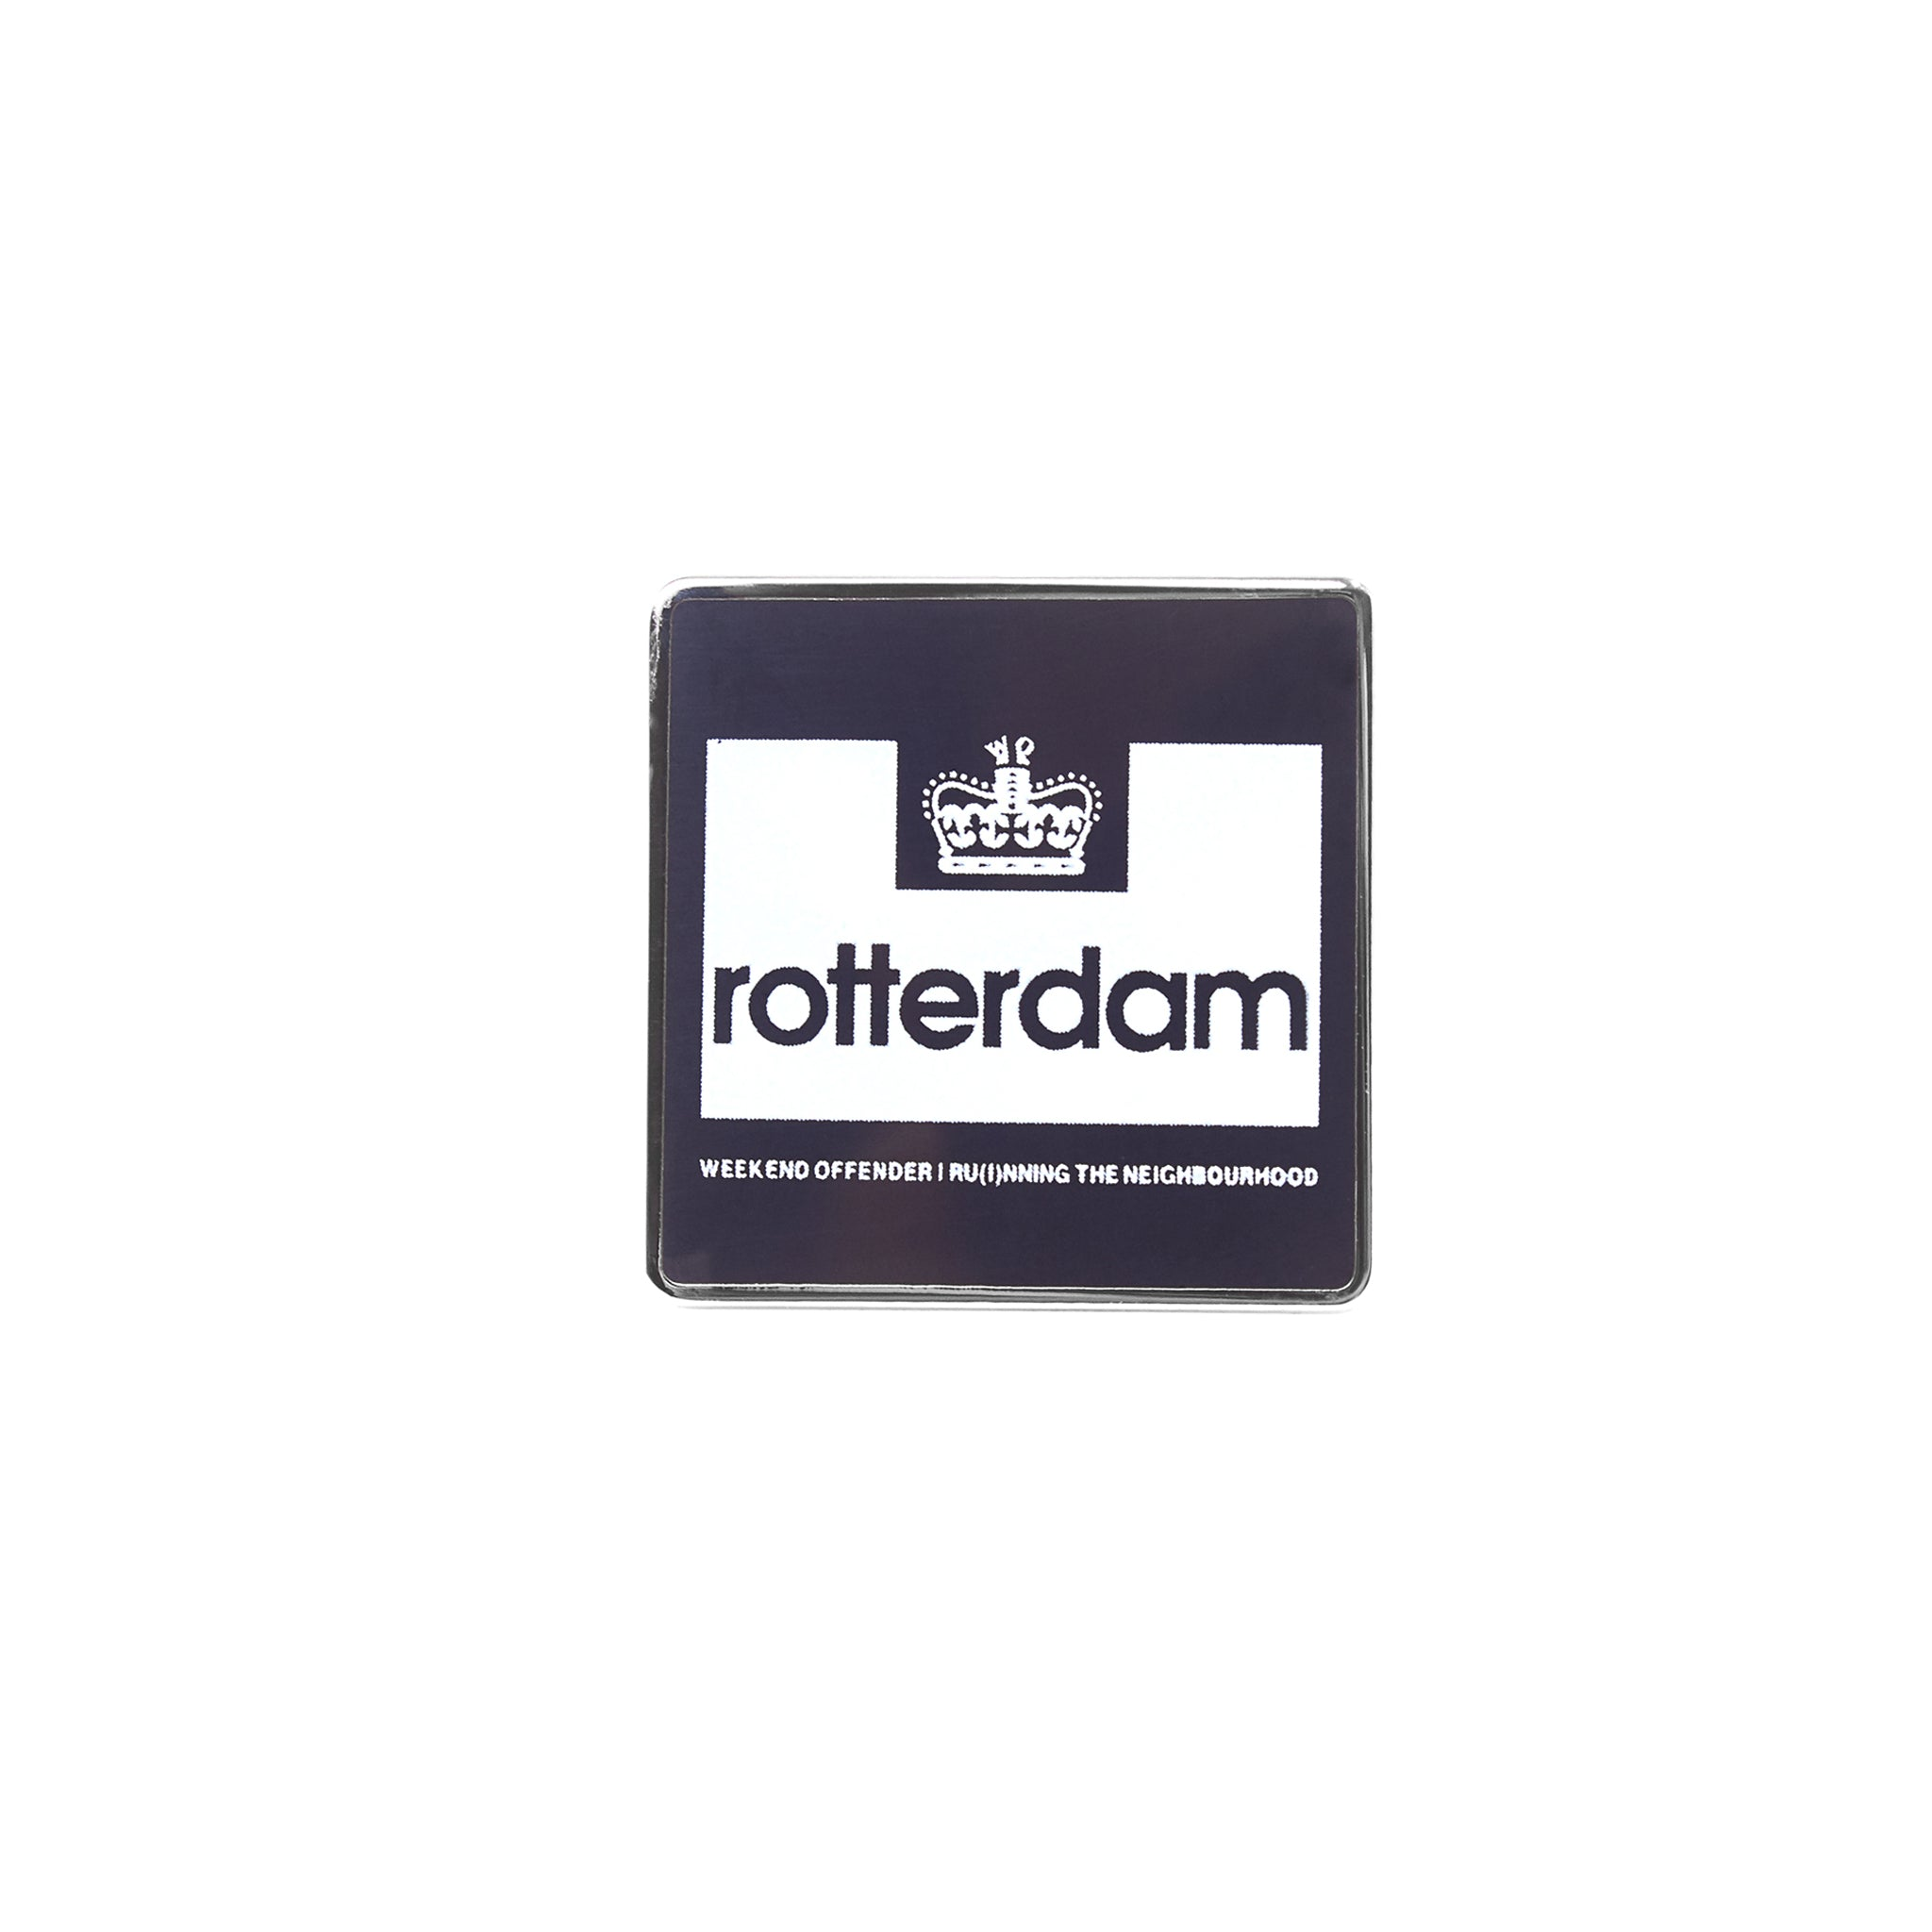 City Series 2 Pin Badge Rotterdam